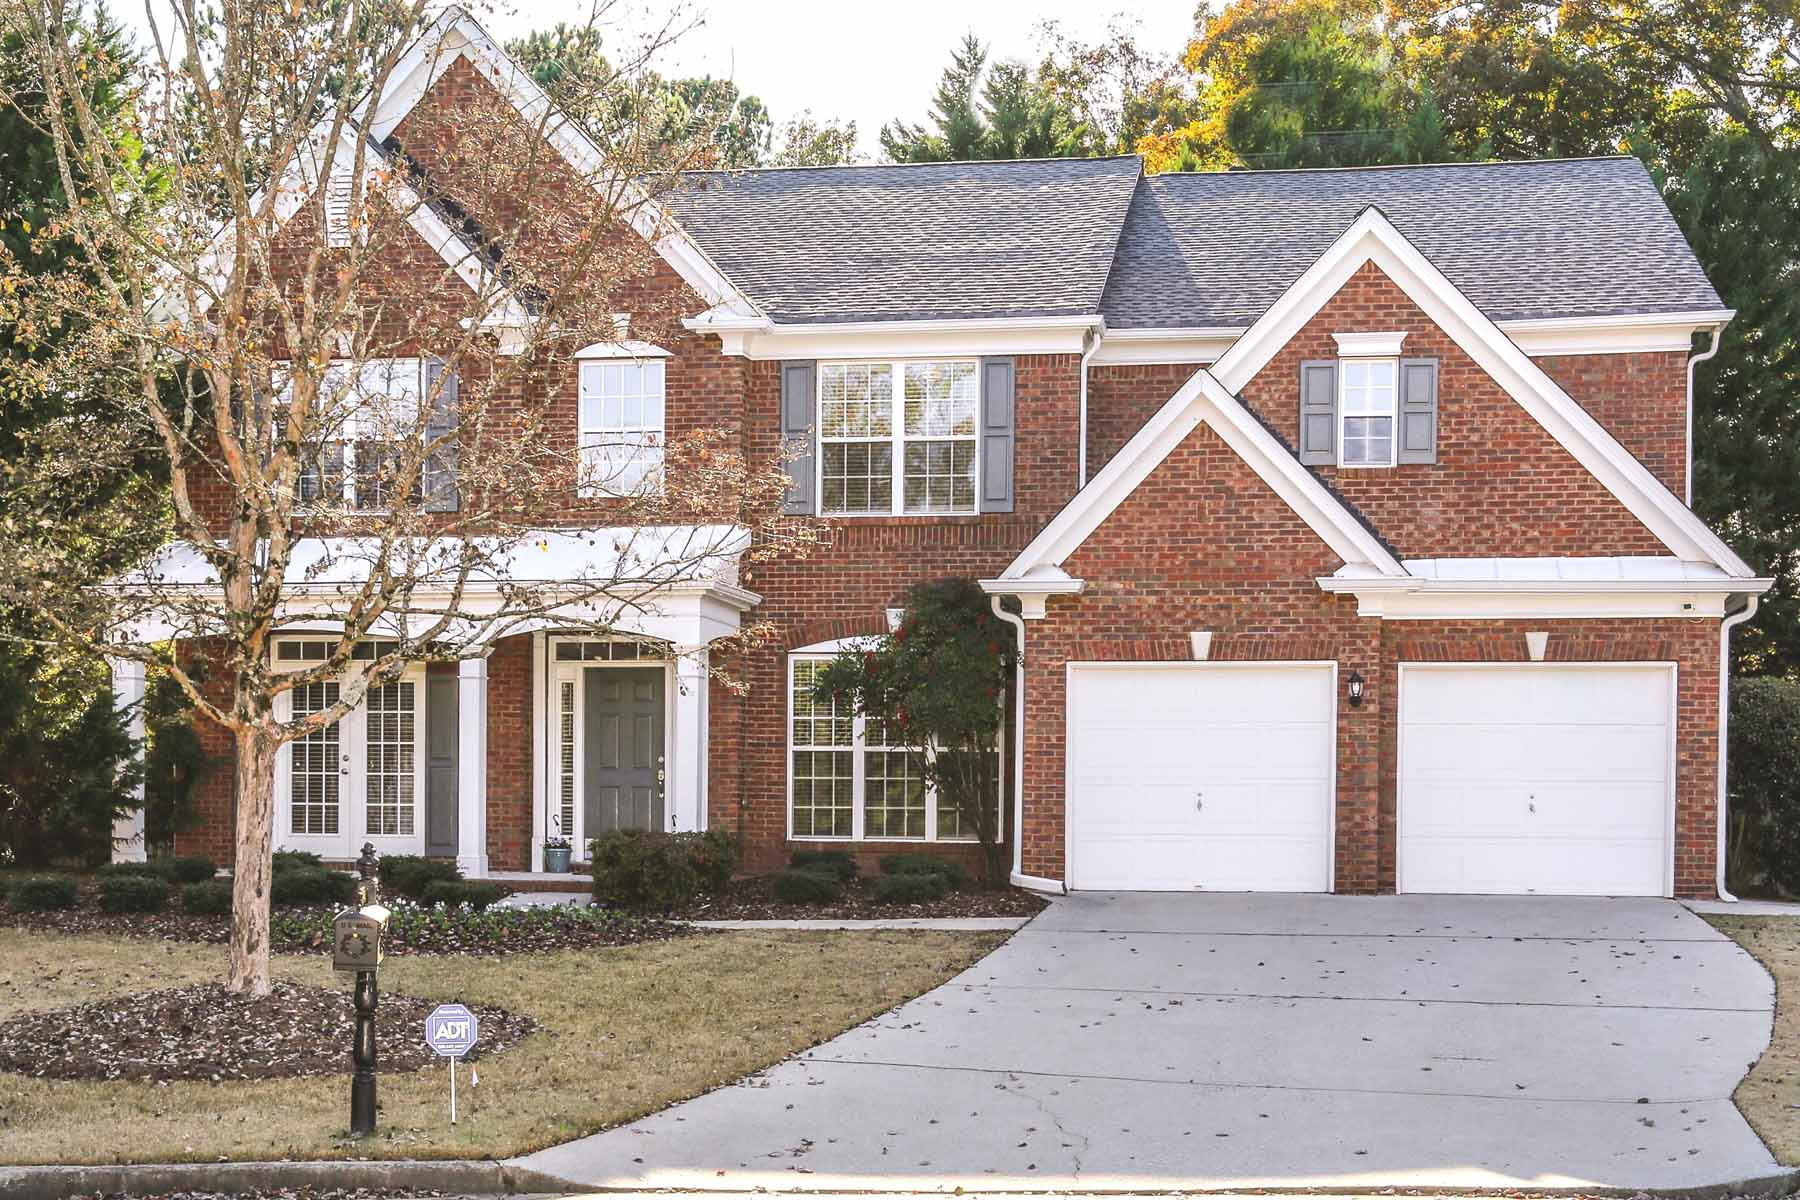 Single Family Homes for Sale at Three Sided Brick Traditional on Cul-de-sac Lot 2001 Belridge Dr, Smyrna, Georgia 30080 United States